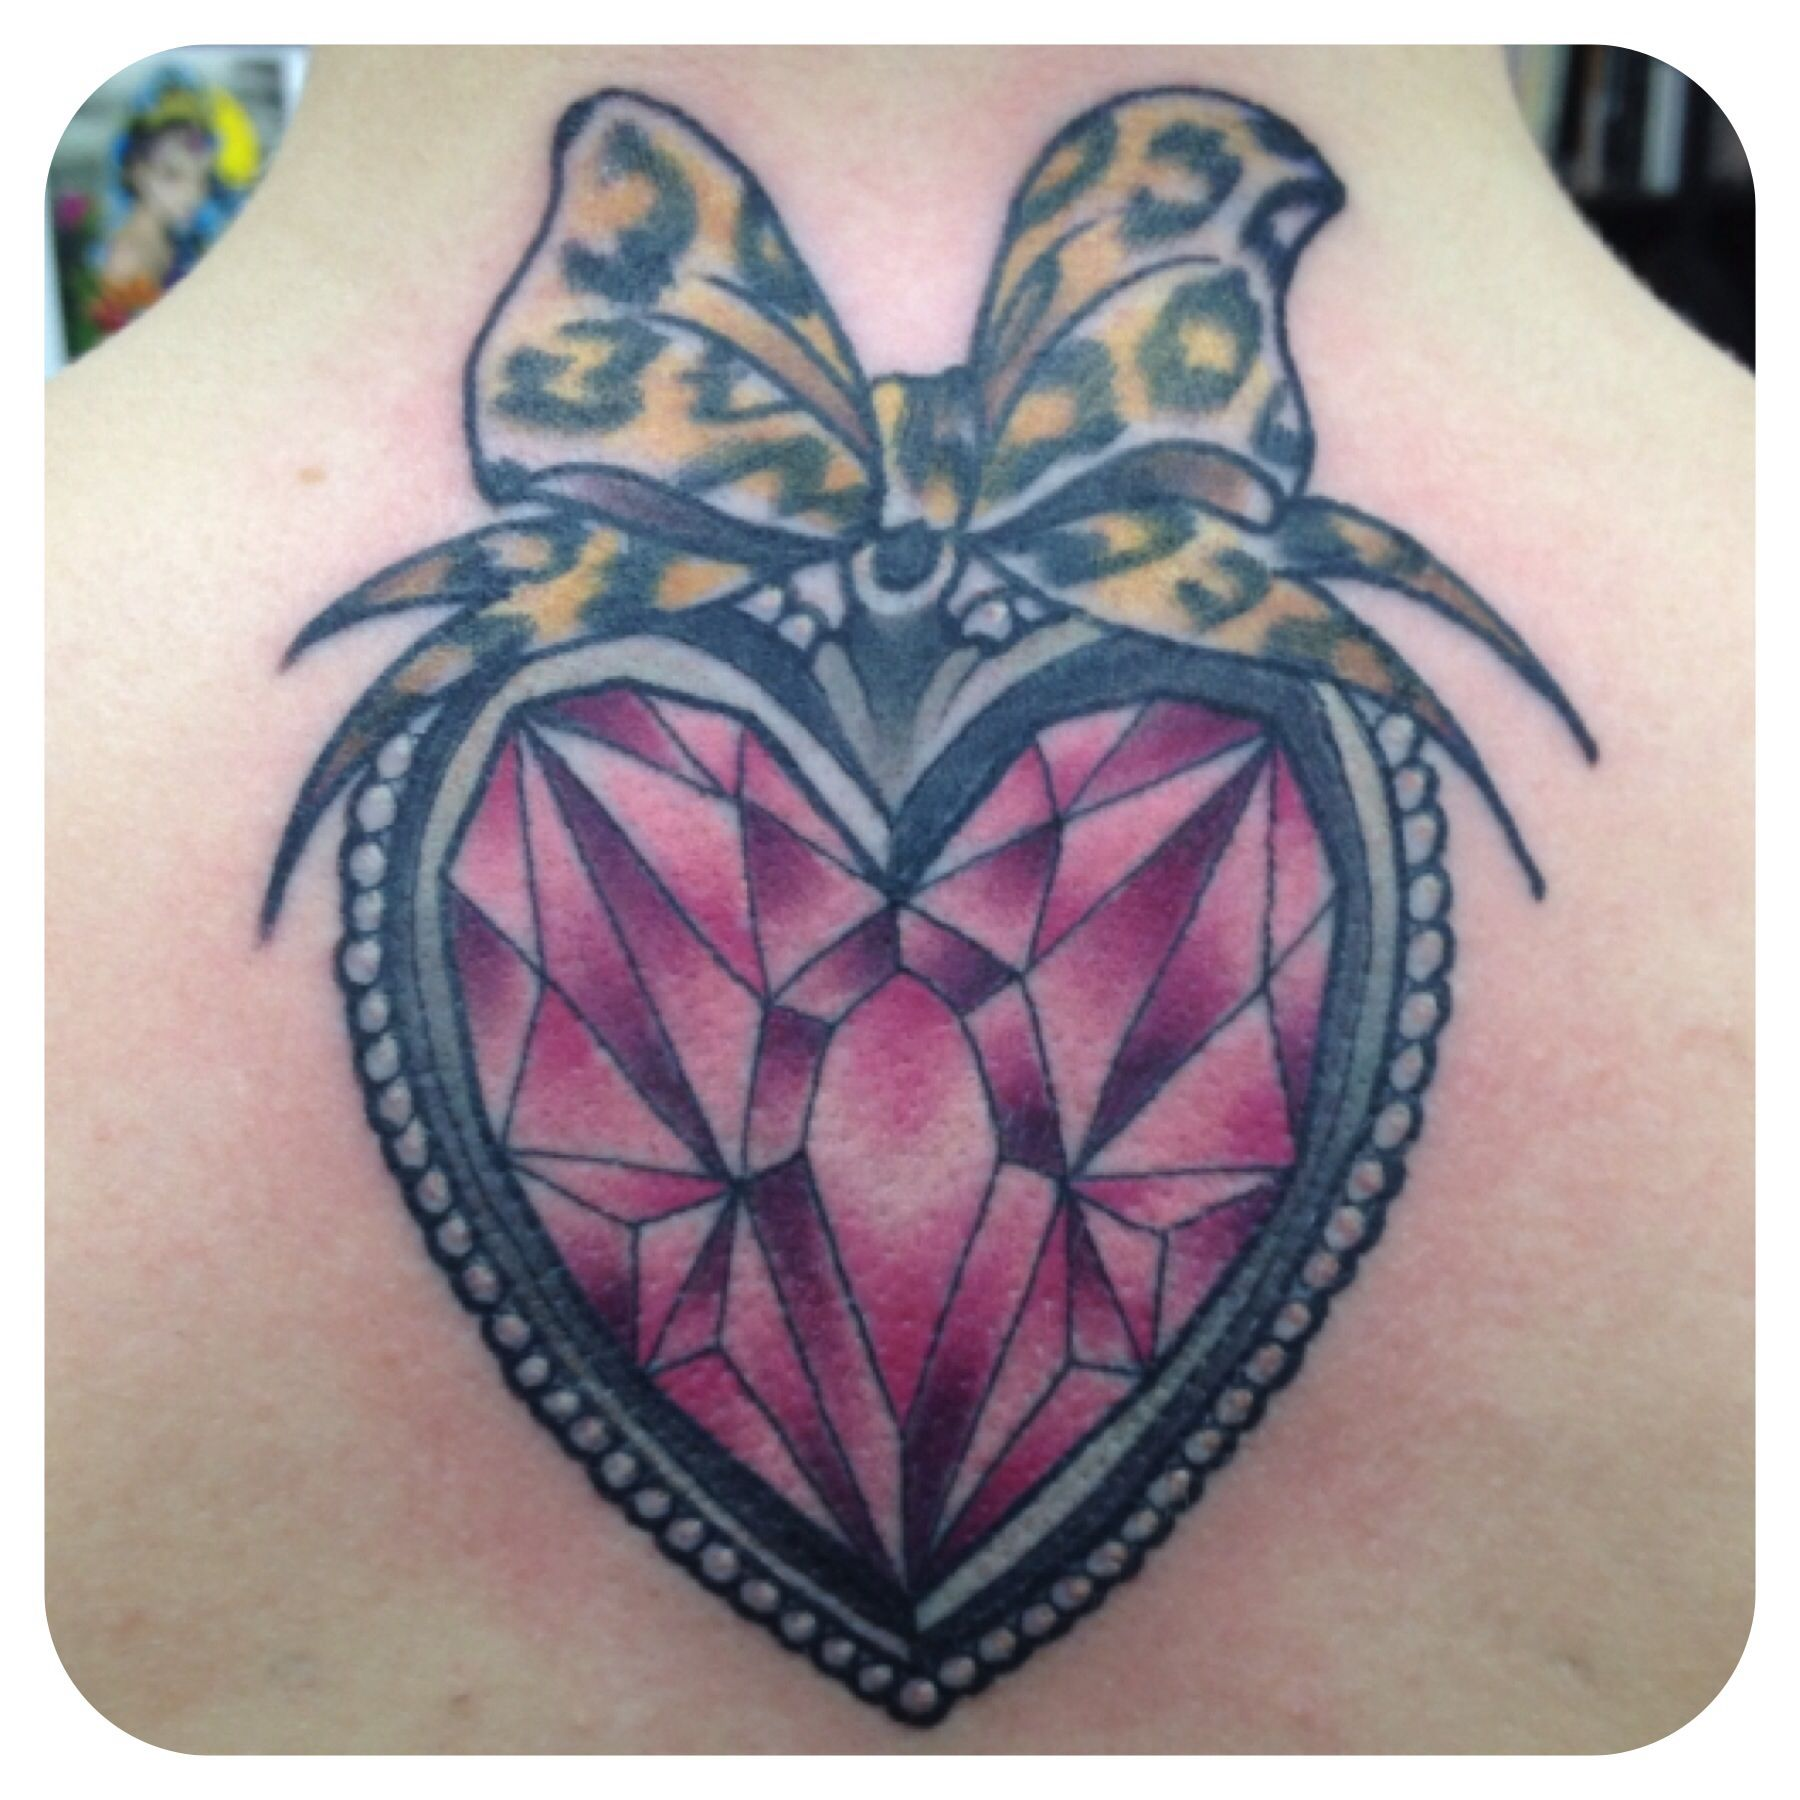 heart shaped diamond tattoo ideas pinterest